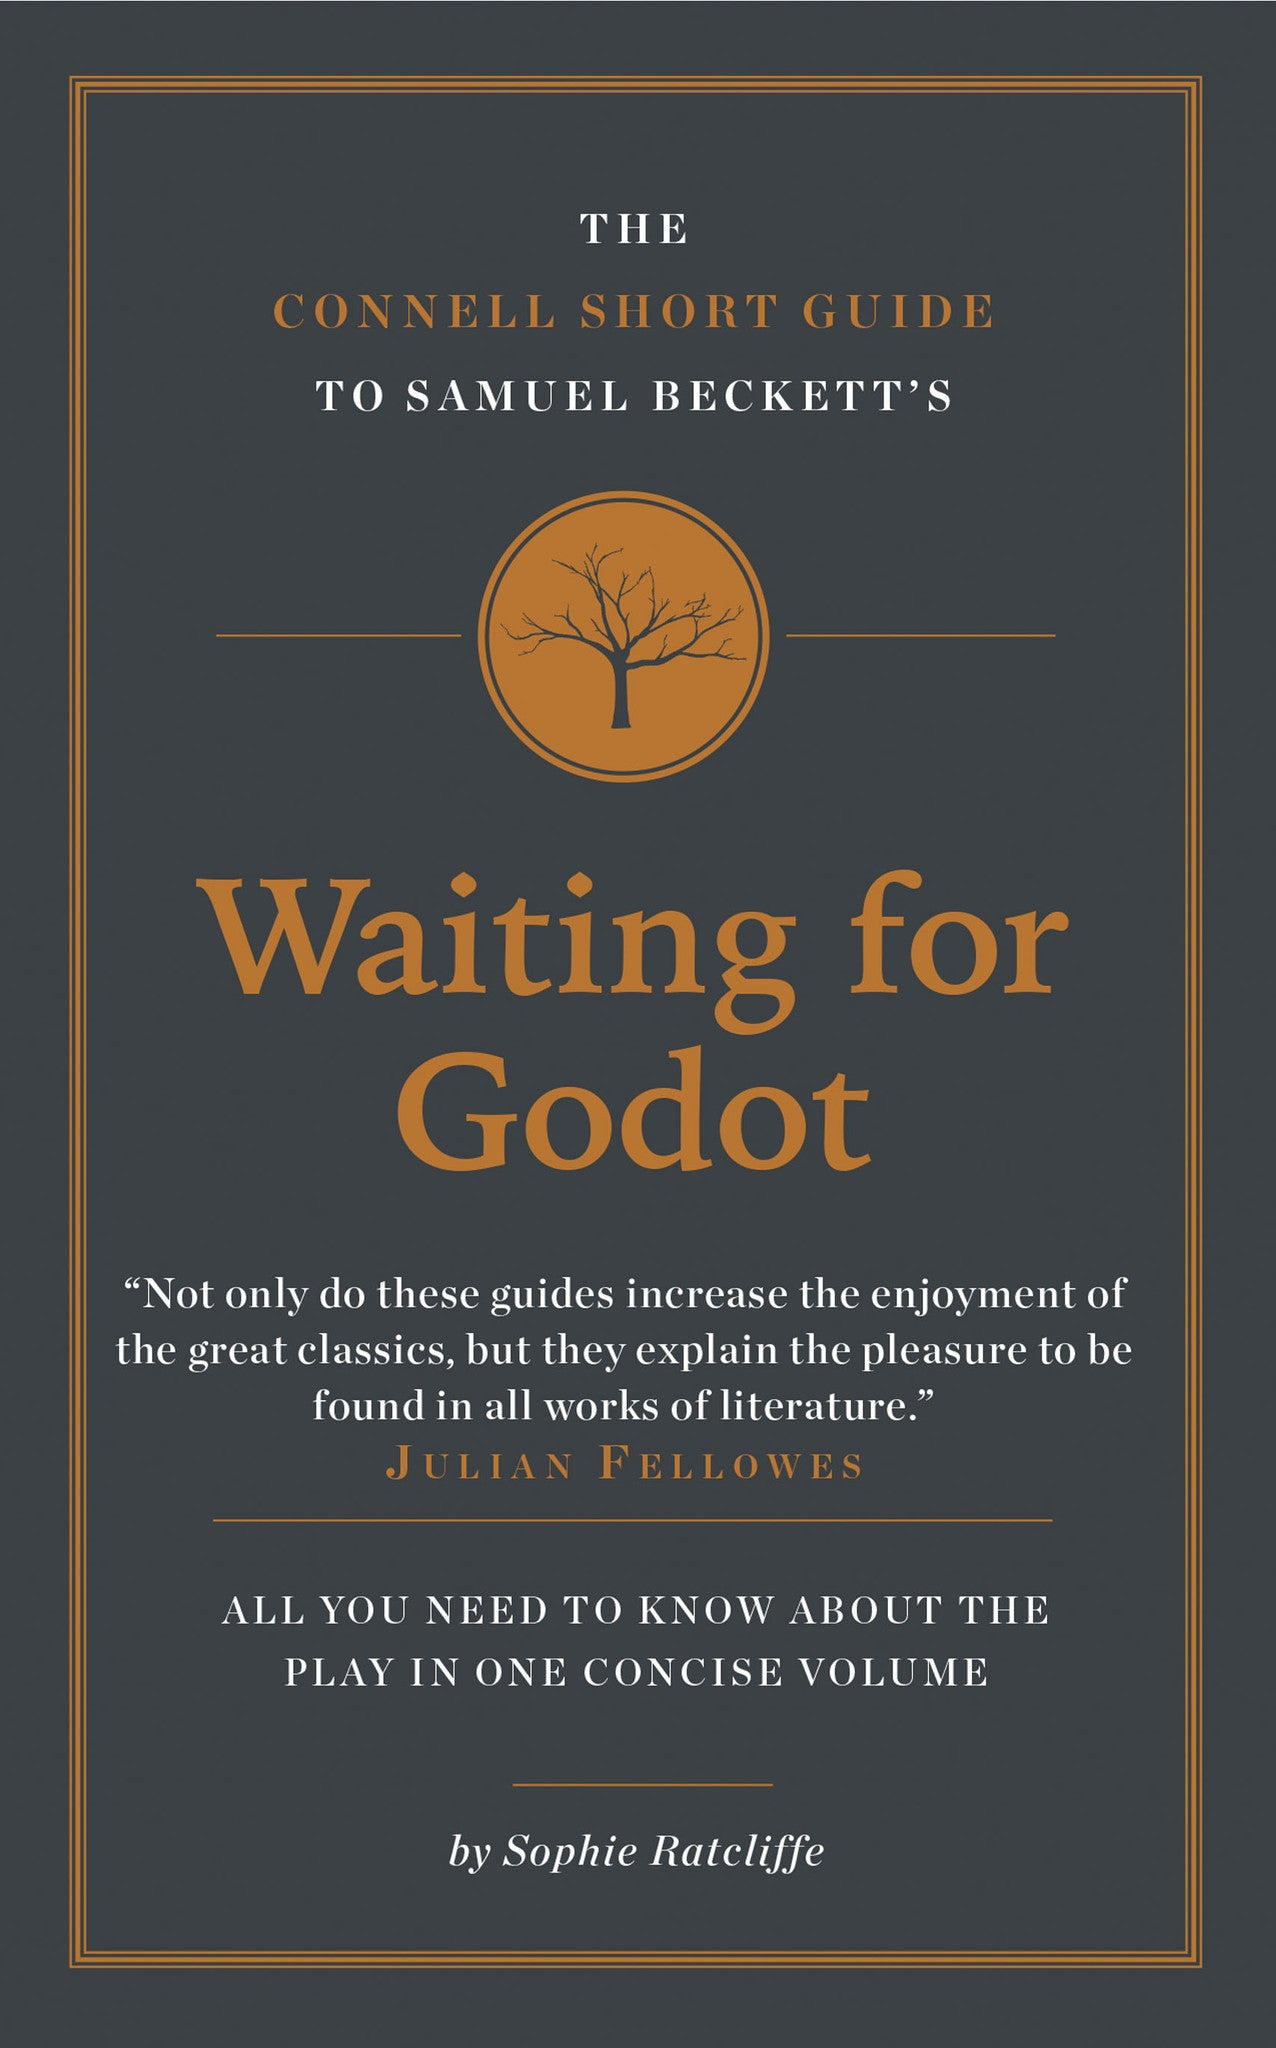 samuel beckett s waiting for godot short study guide connell guides  samuel beckett s waiting for godot short study guide